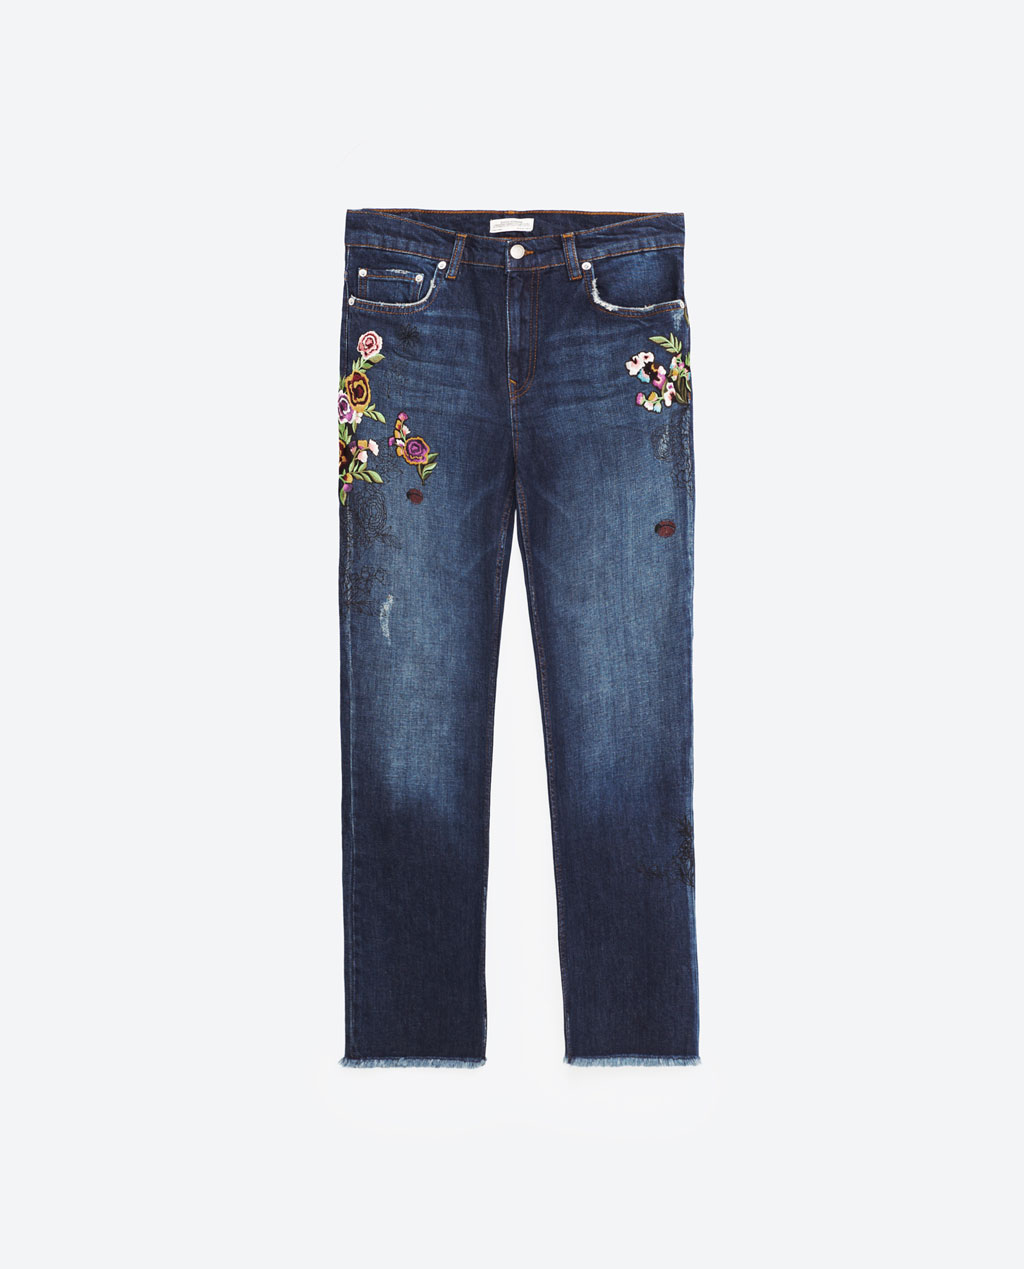 http://www.zara.com/us/en/sale/woman/jeans/relaxed-fit/cropped-embroidered-jeans-c795034p3994006.html